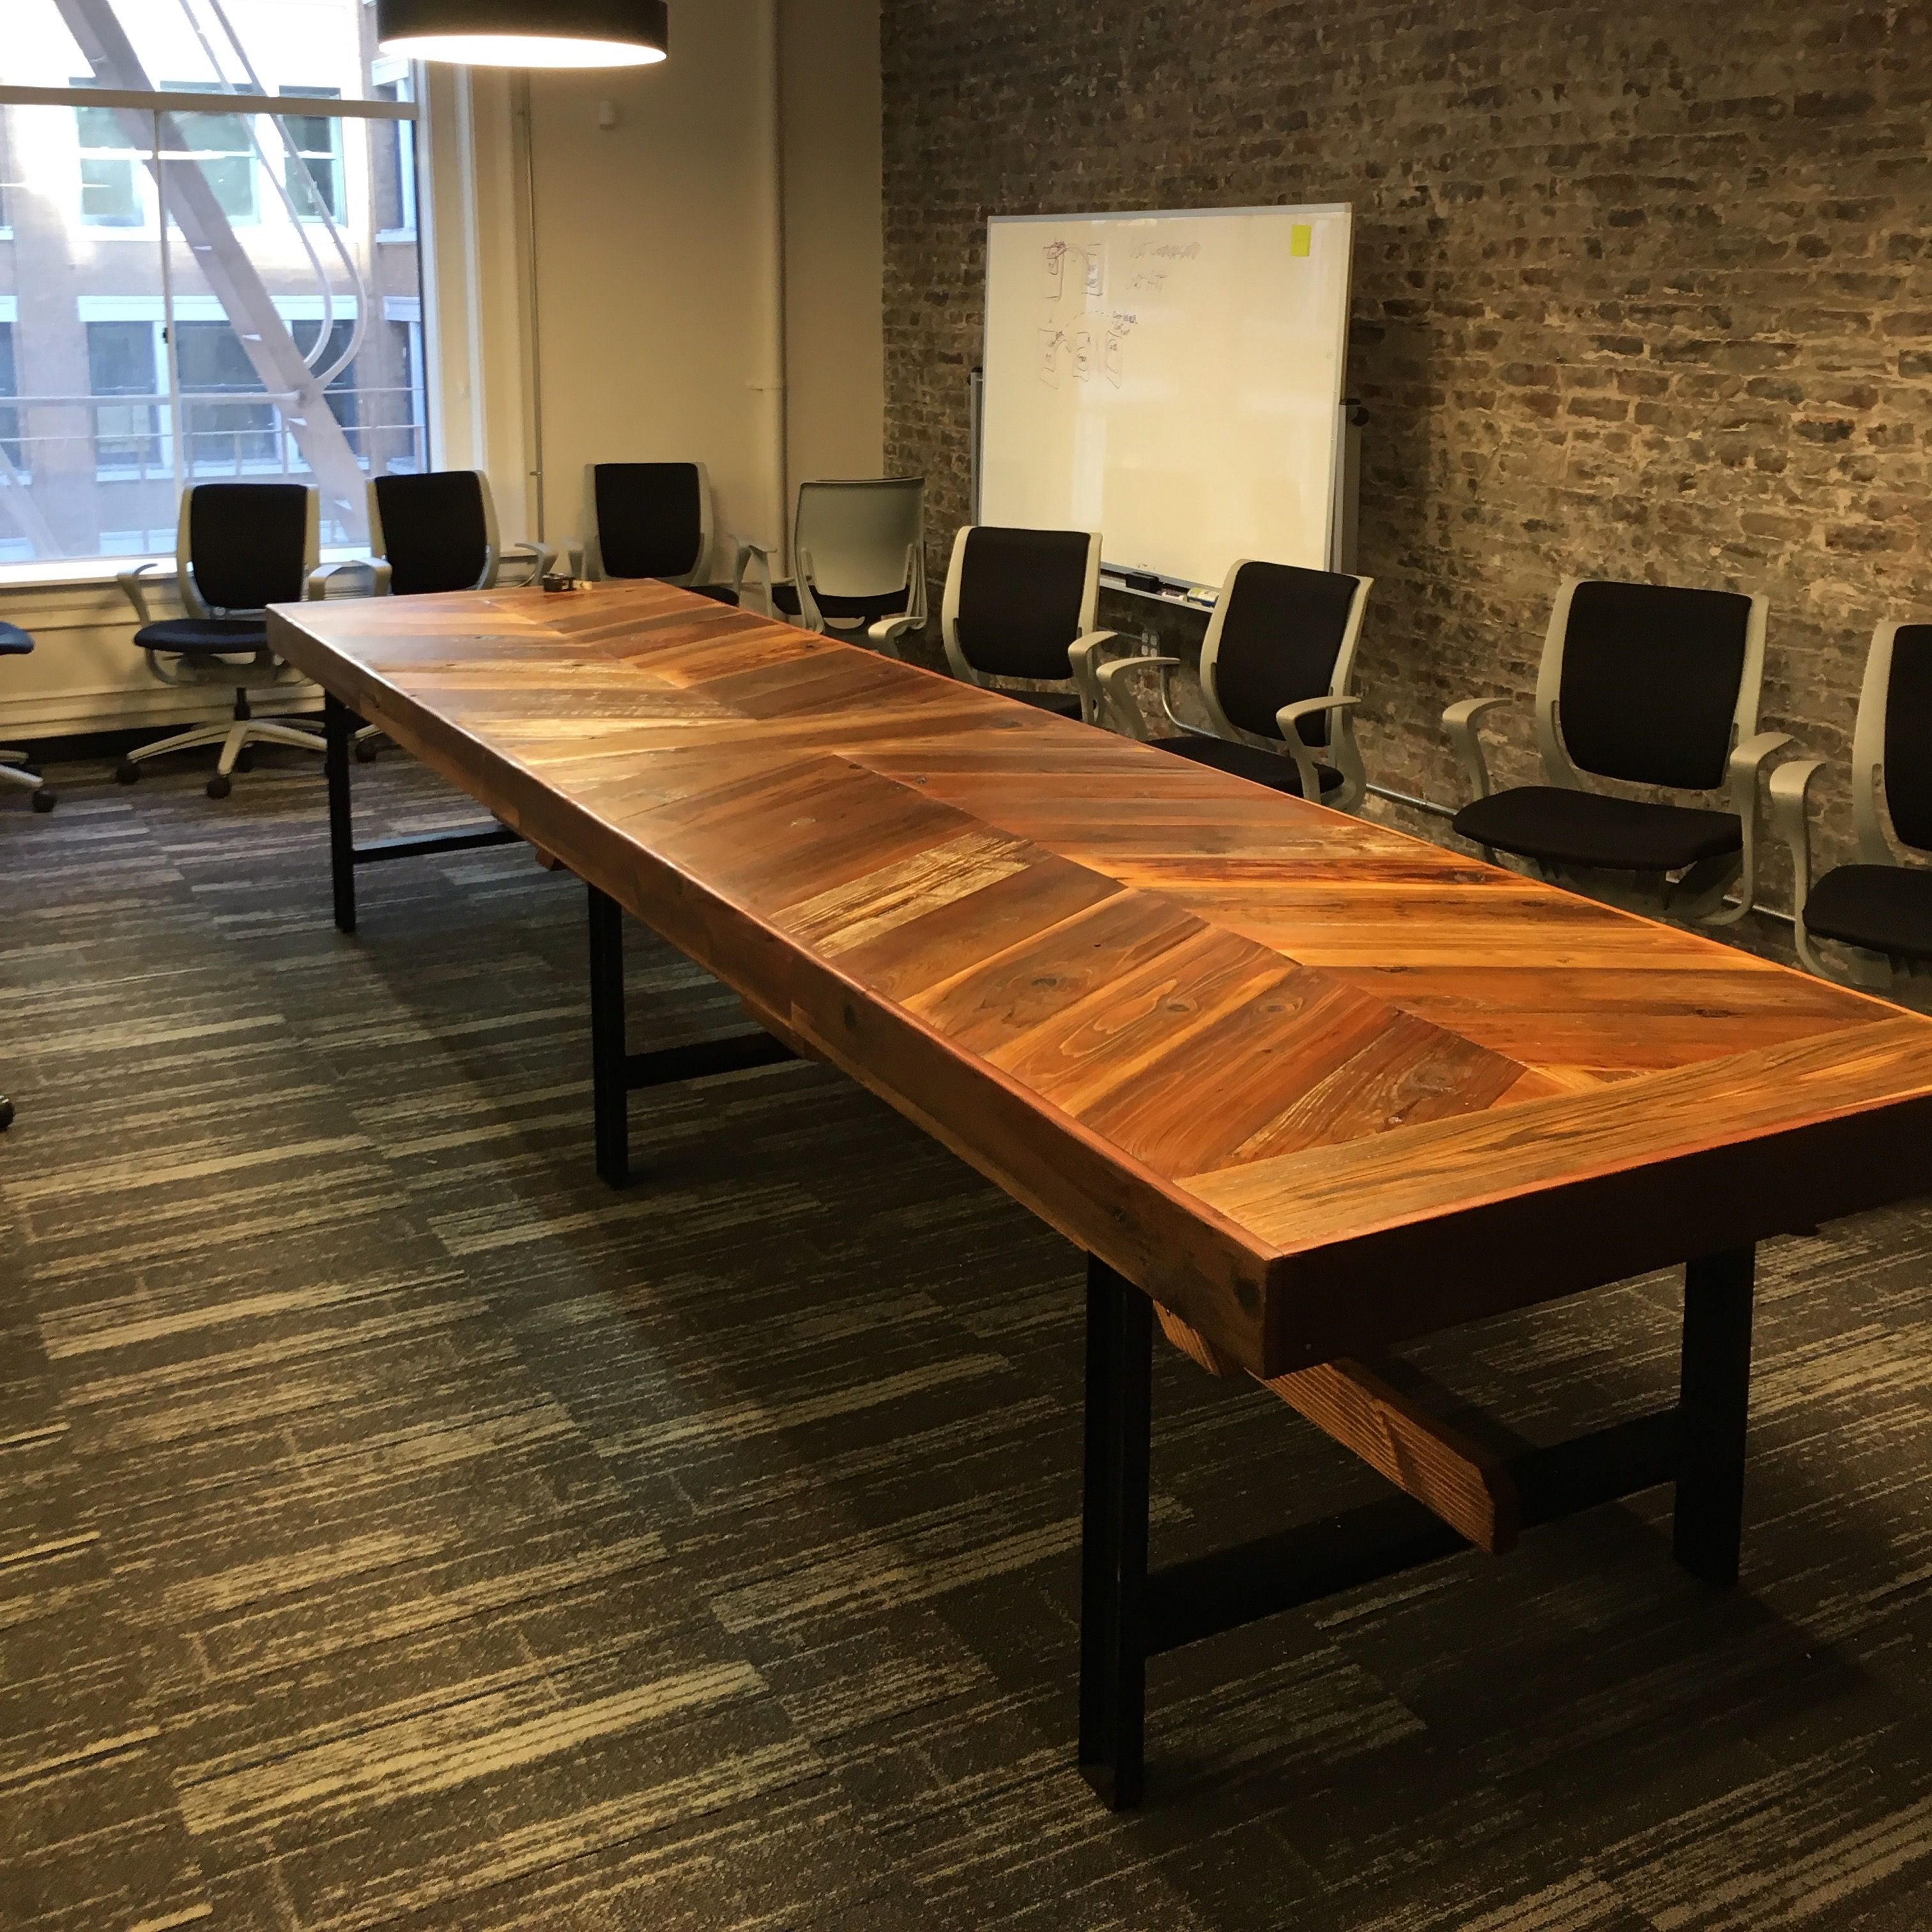 Custom Conference Tables CustomMadecom - Large wooden conference table